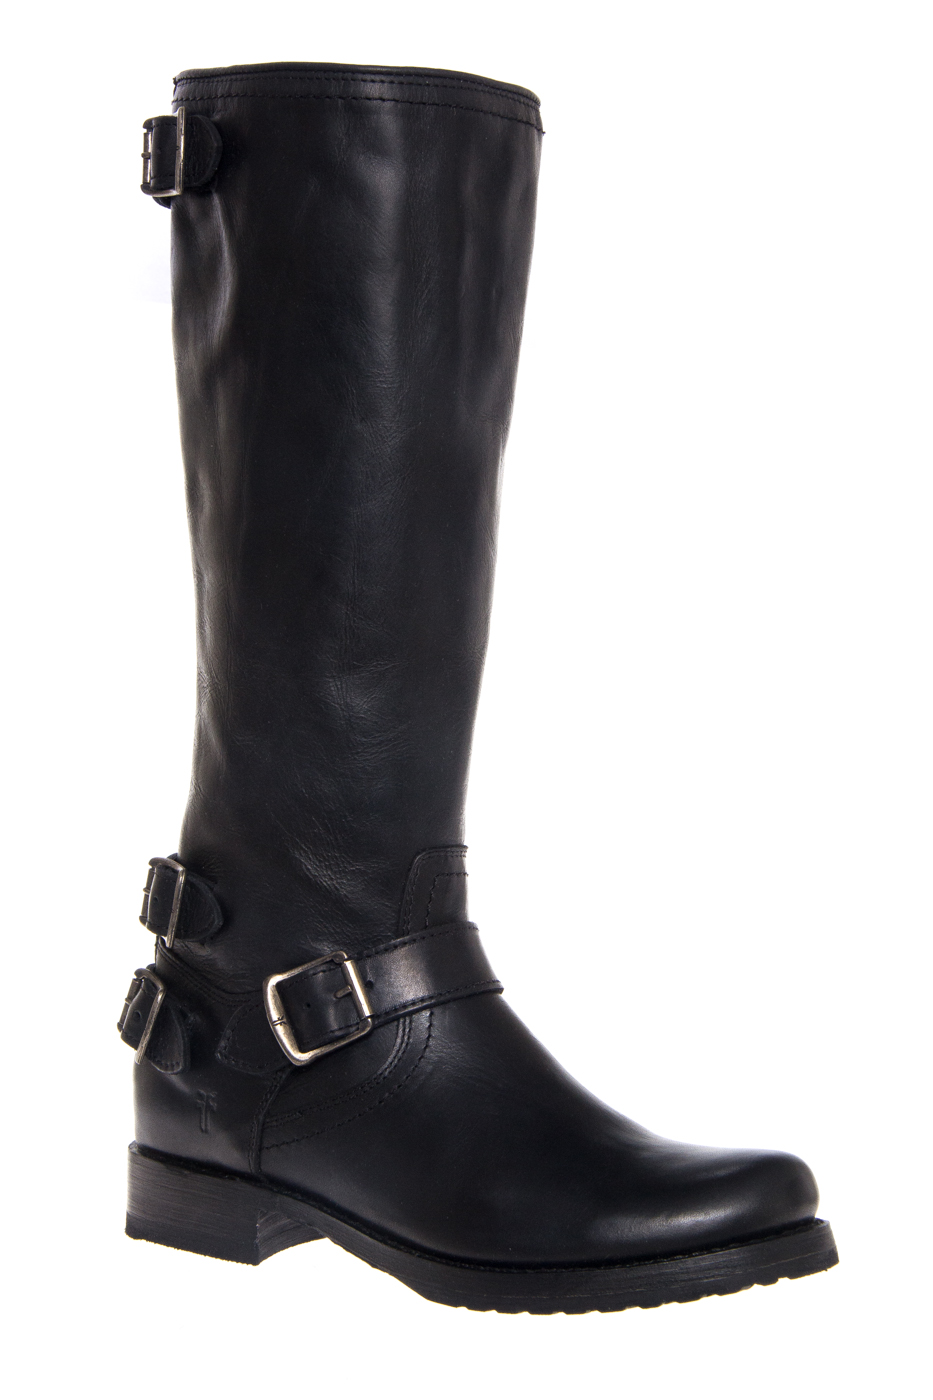 Frye Veronica Tall Boots - Black